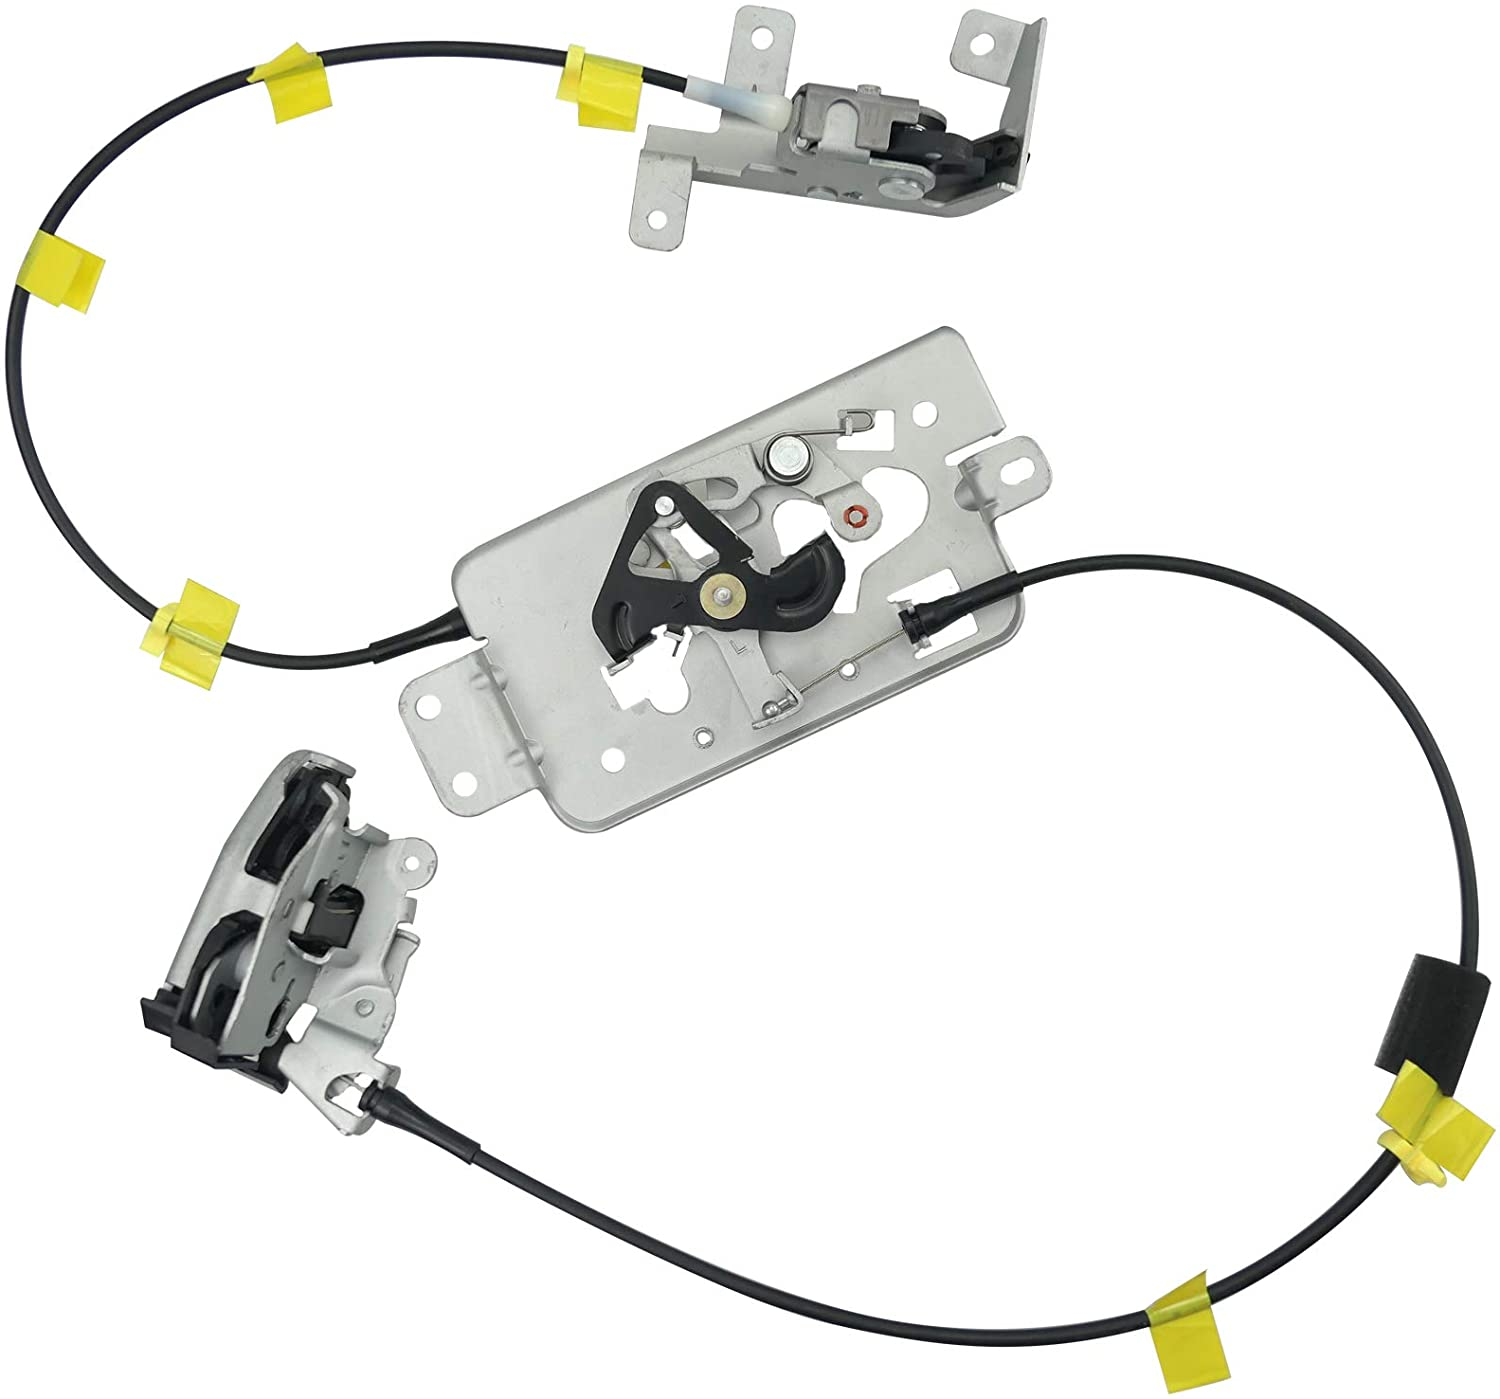 2004 -2008 Rear Left Driver Side Door Lock Latch with Cable For Ford F-150 Extended Cab Pickup Upper Lower Rear Side Latches Ass